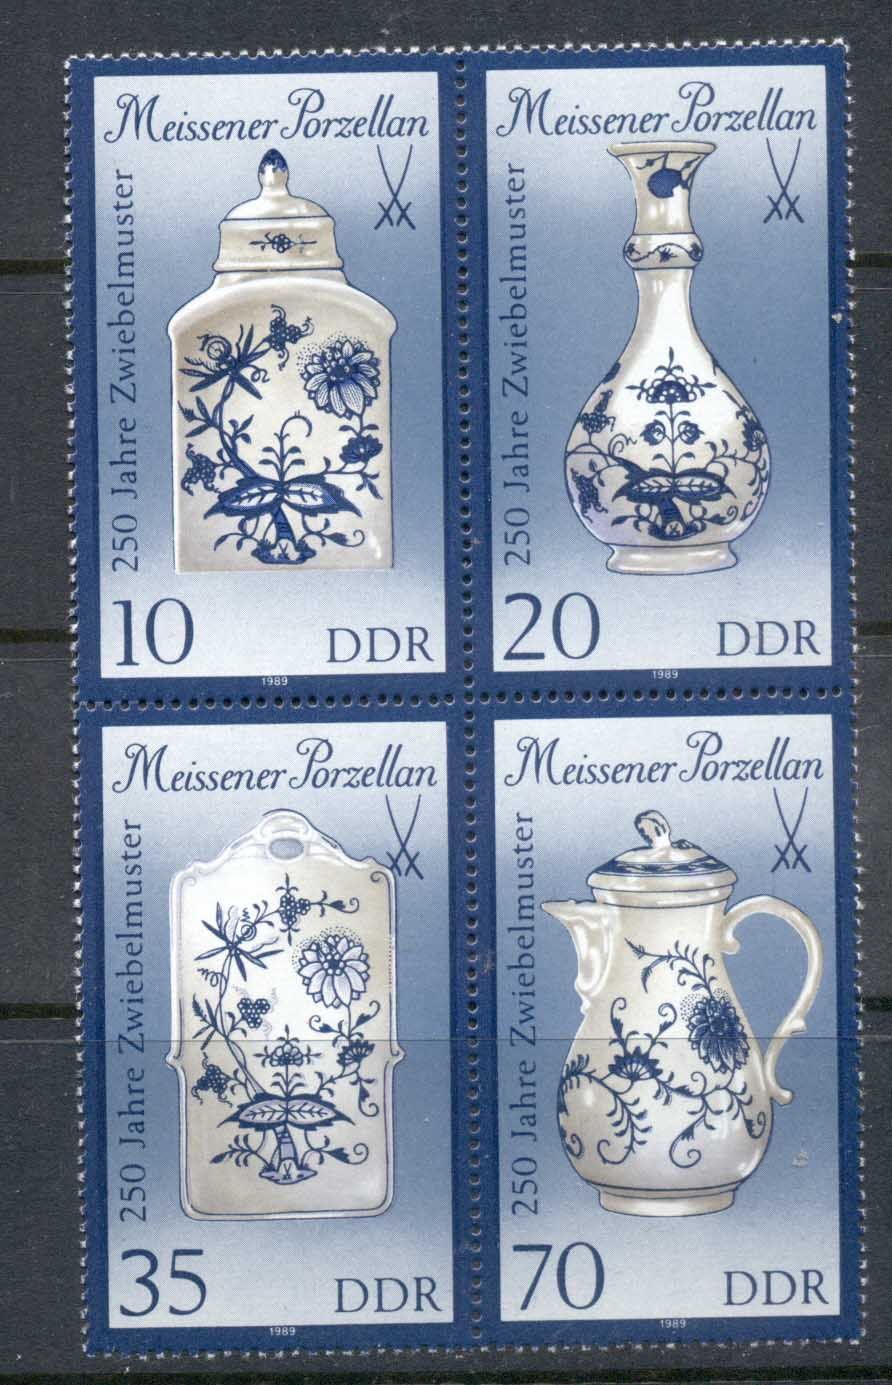 Germany DDR 1989 Meissen Porcelaine MUH